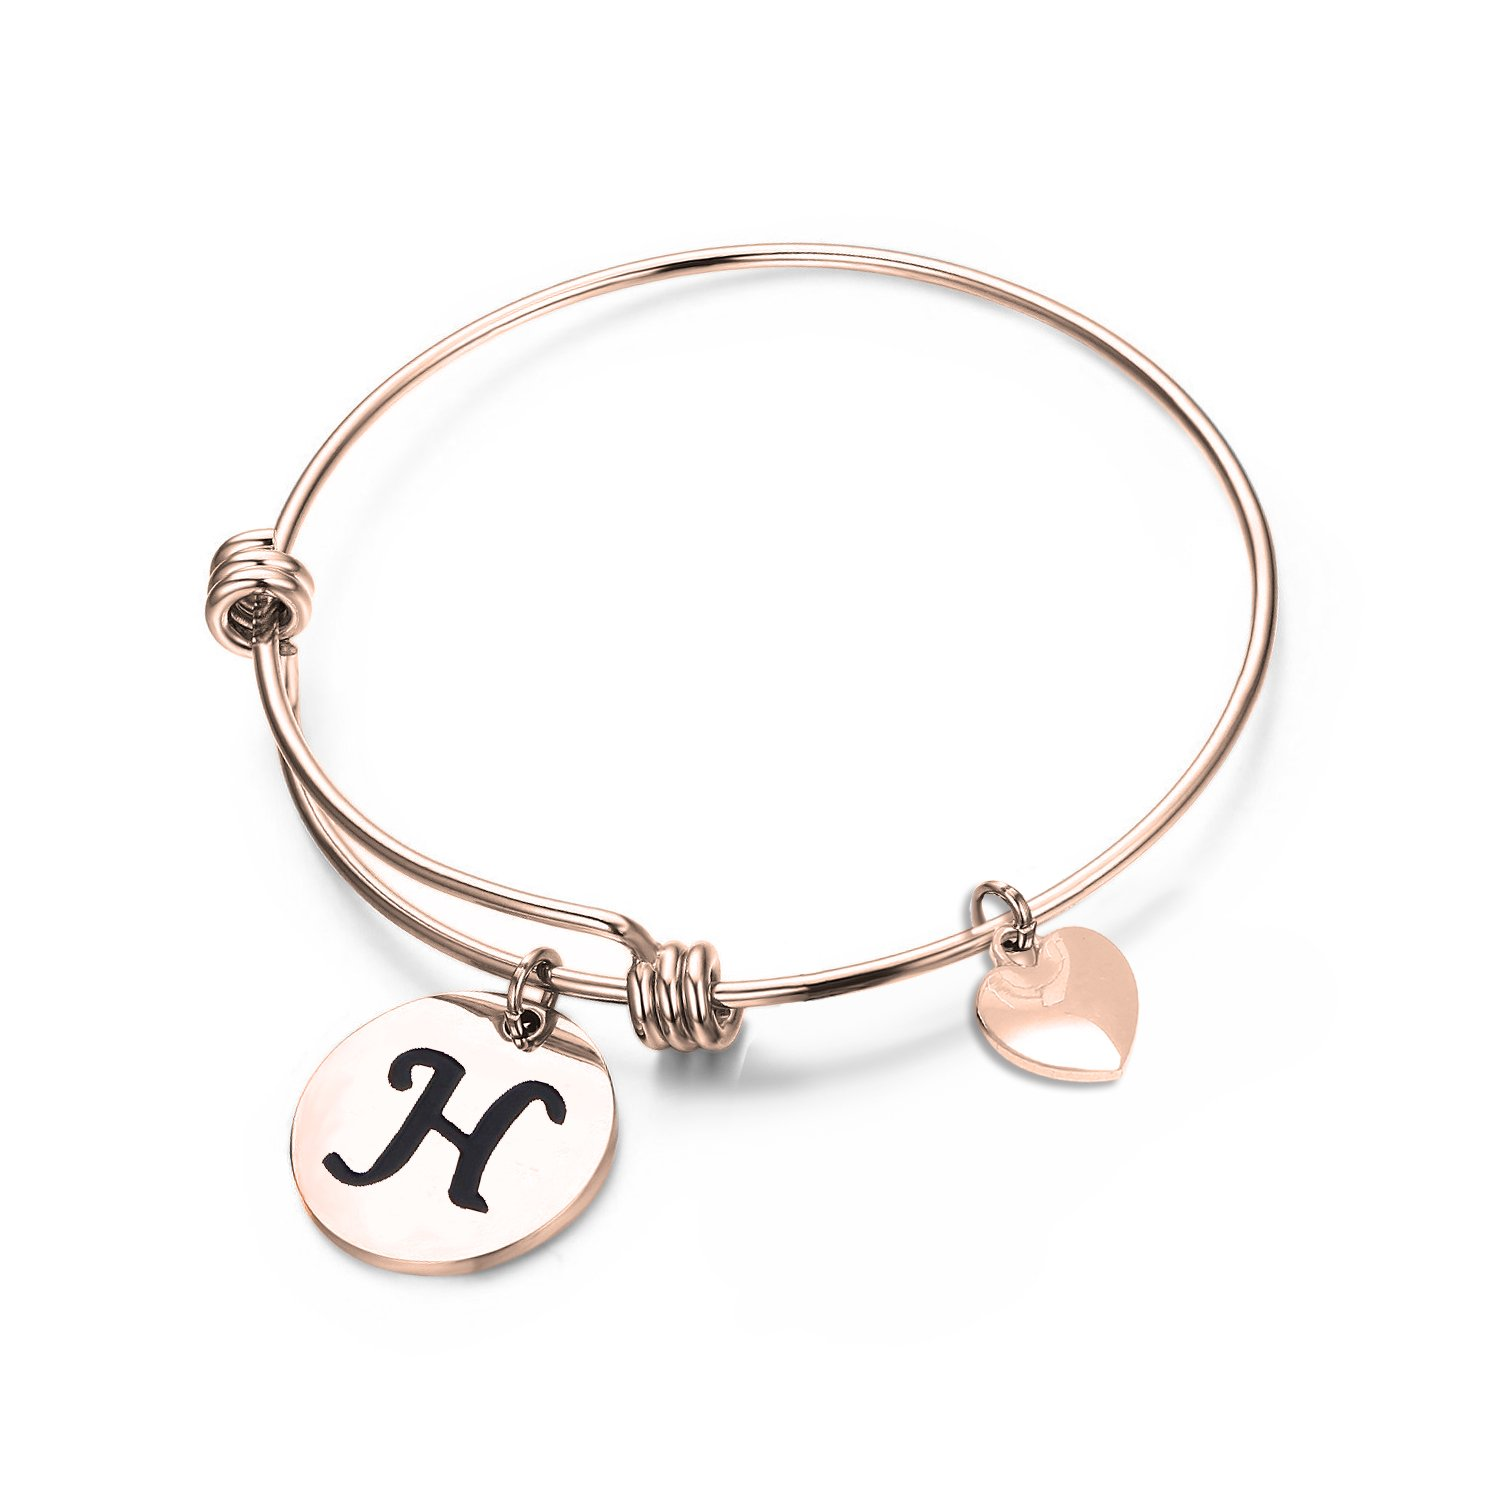 MAOFAED Initial Bracelet,Rose Gold Letter Bracelet, Personalized Jewelry, Hand Stamped Jewelry B076WMZ9ND_US